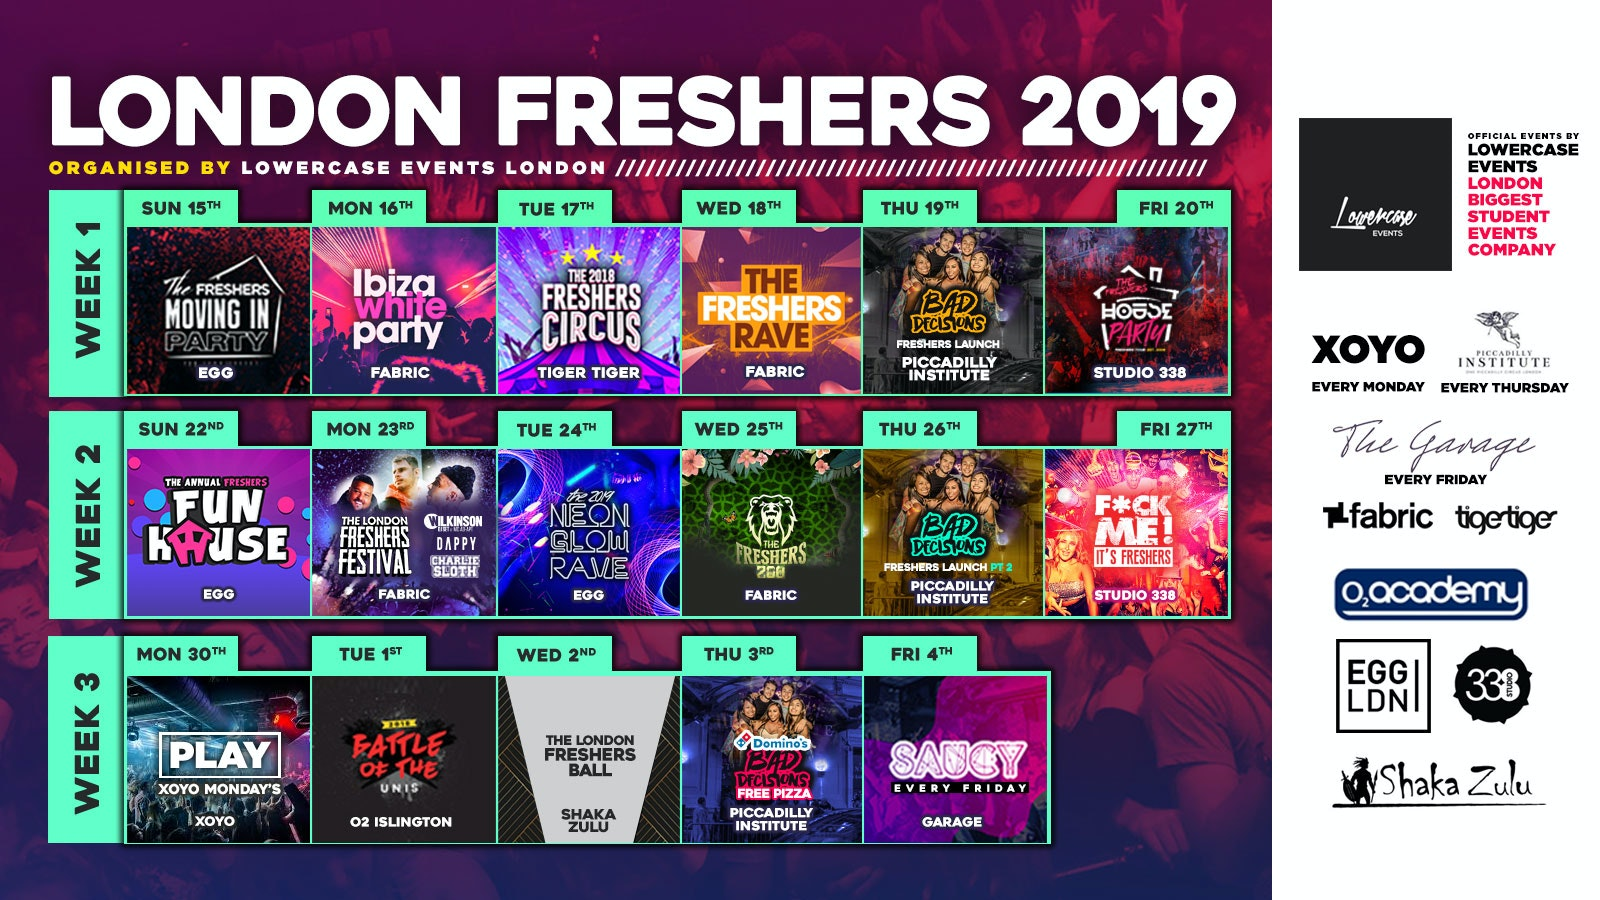 THE 2019 OFFICIAL LONDON FRESHERS GUIDE ✅